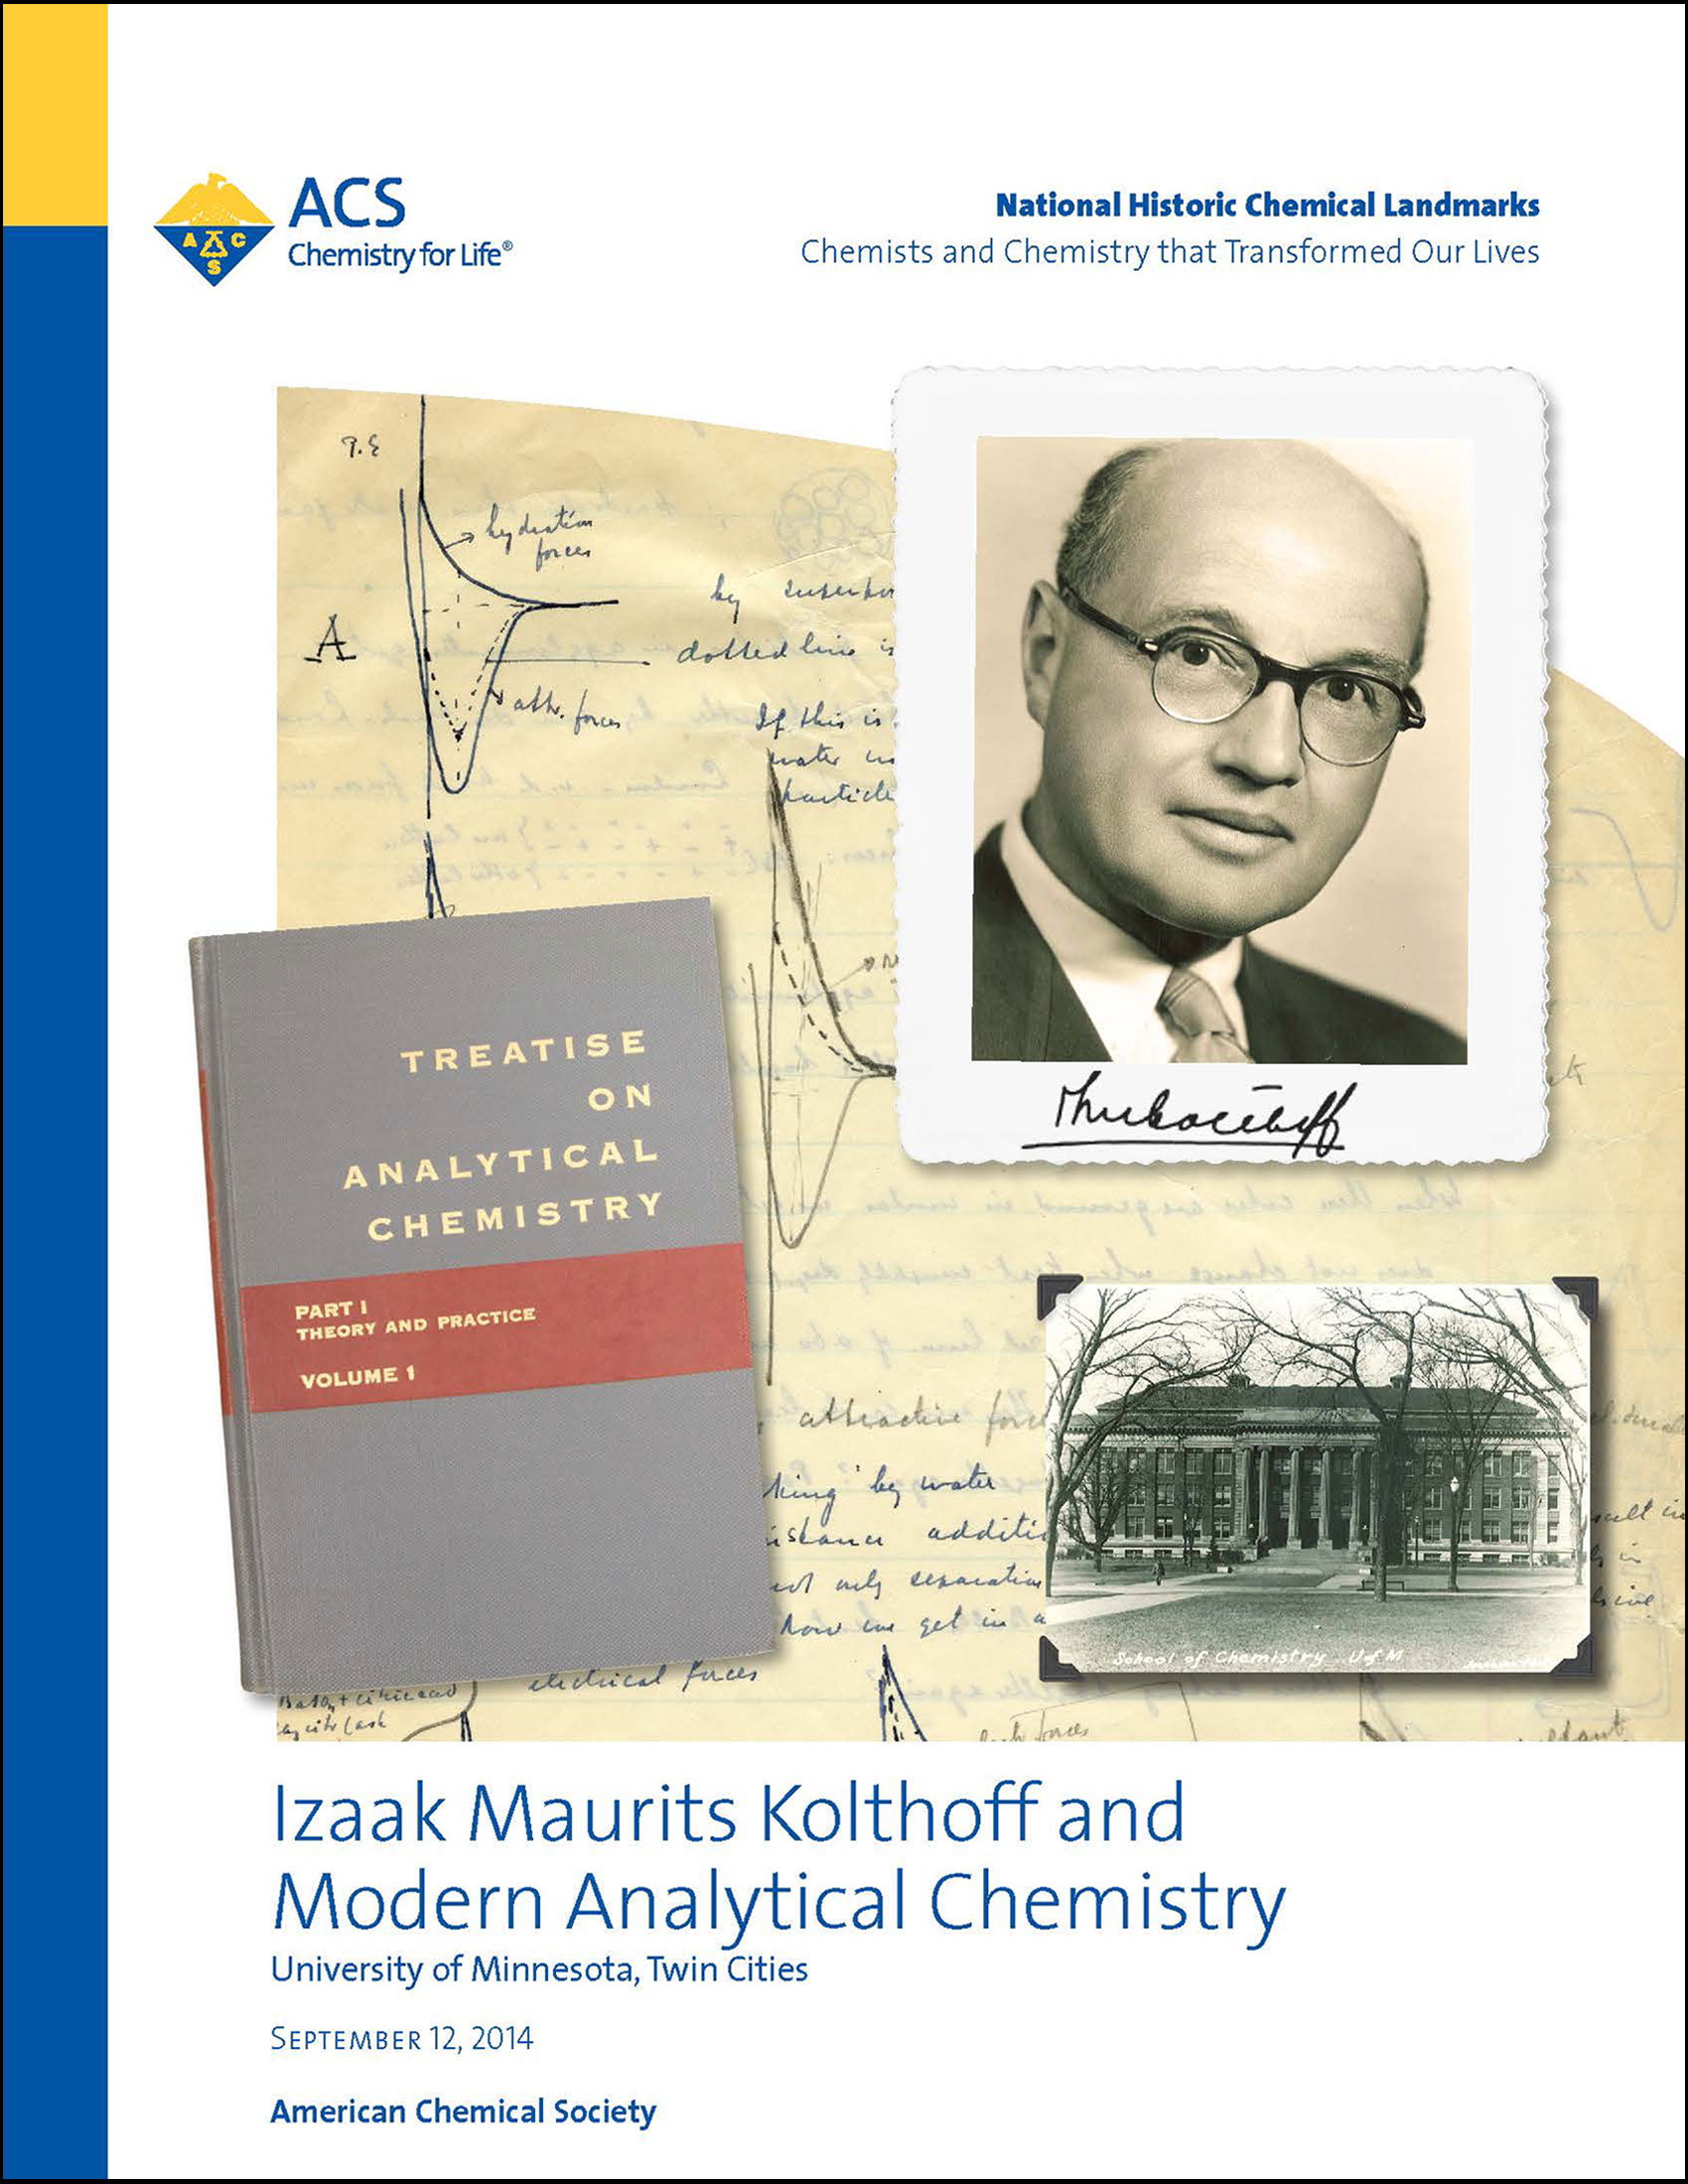 Kolthoff Analytical Chemistry National Historic Chemical Landmark commemorative booklet